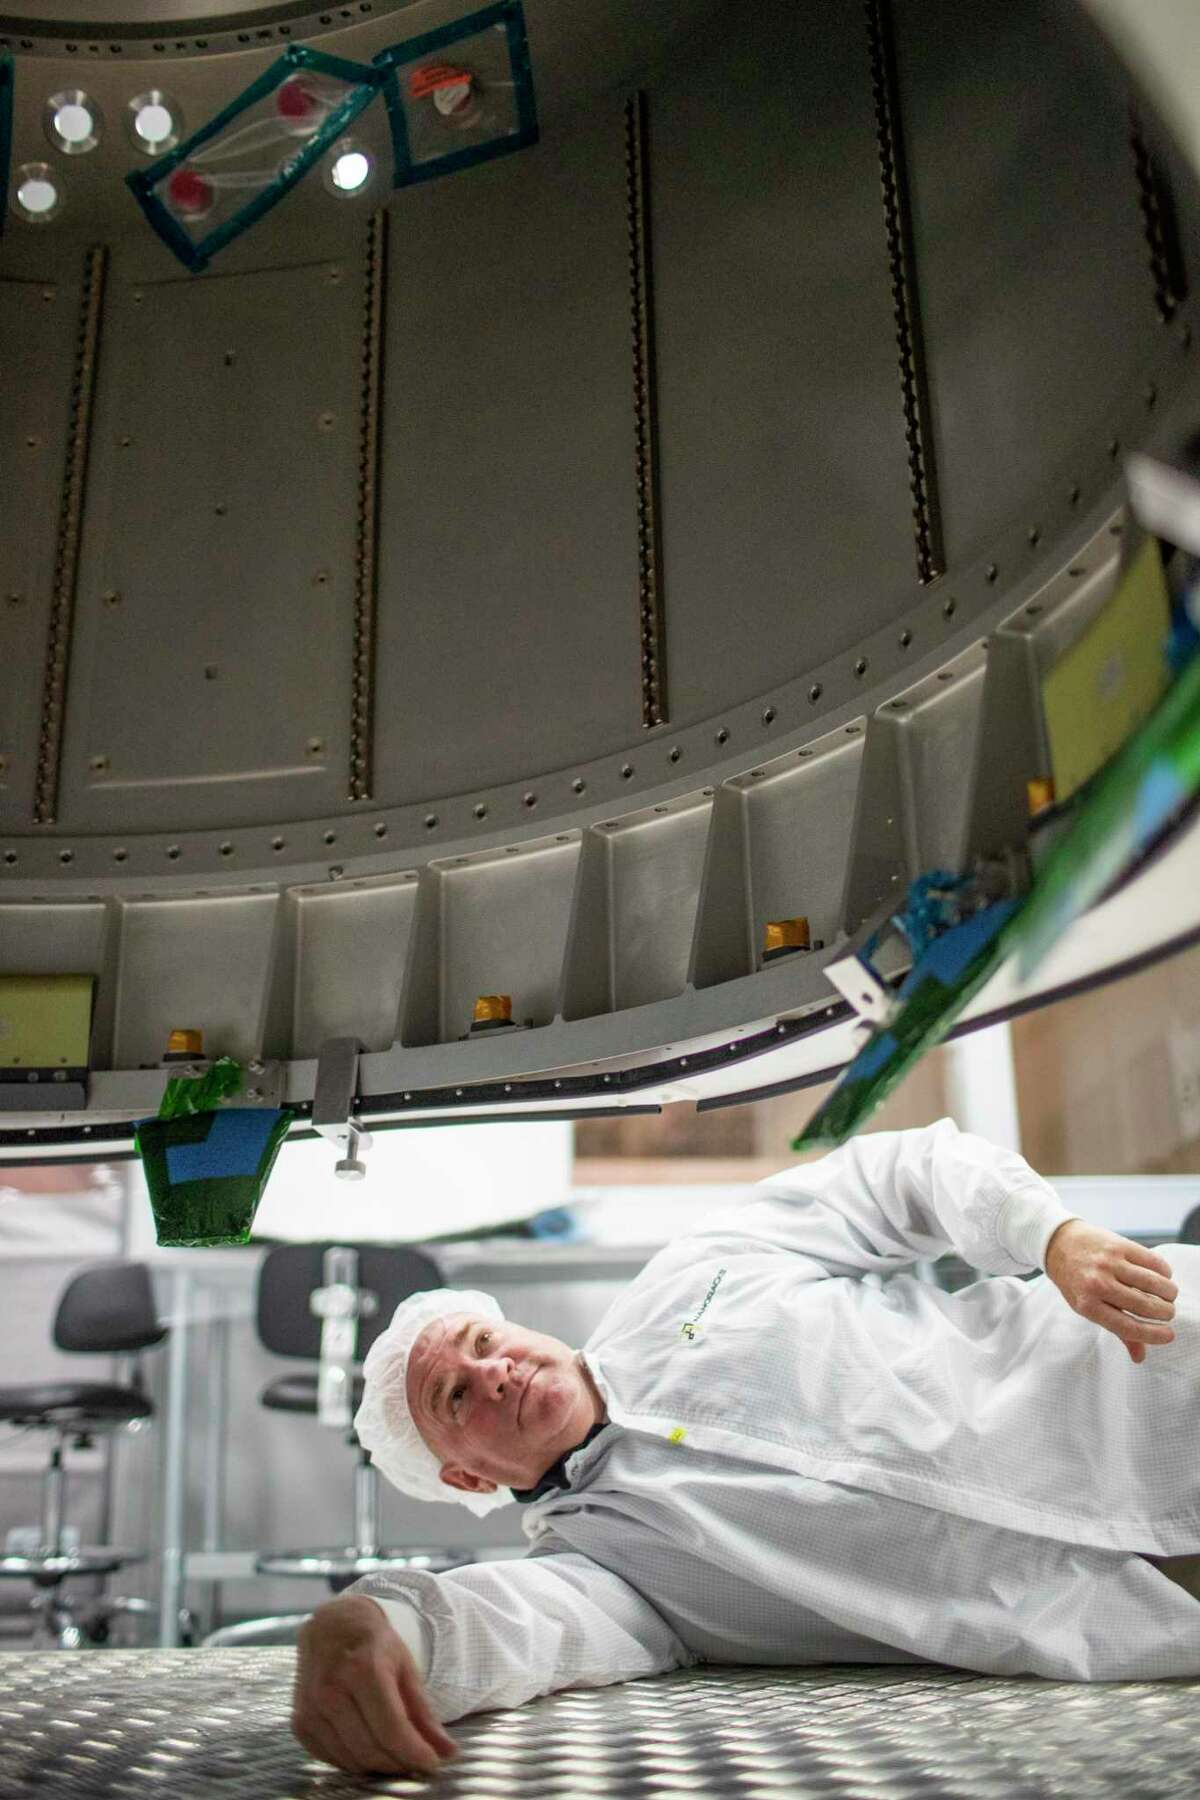 Brock Howe, Nanoracks airlock project manager observes inside the Nanoracks Bishop Airlock module on Wednesday, Aug. 14, 2019, in Webster.